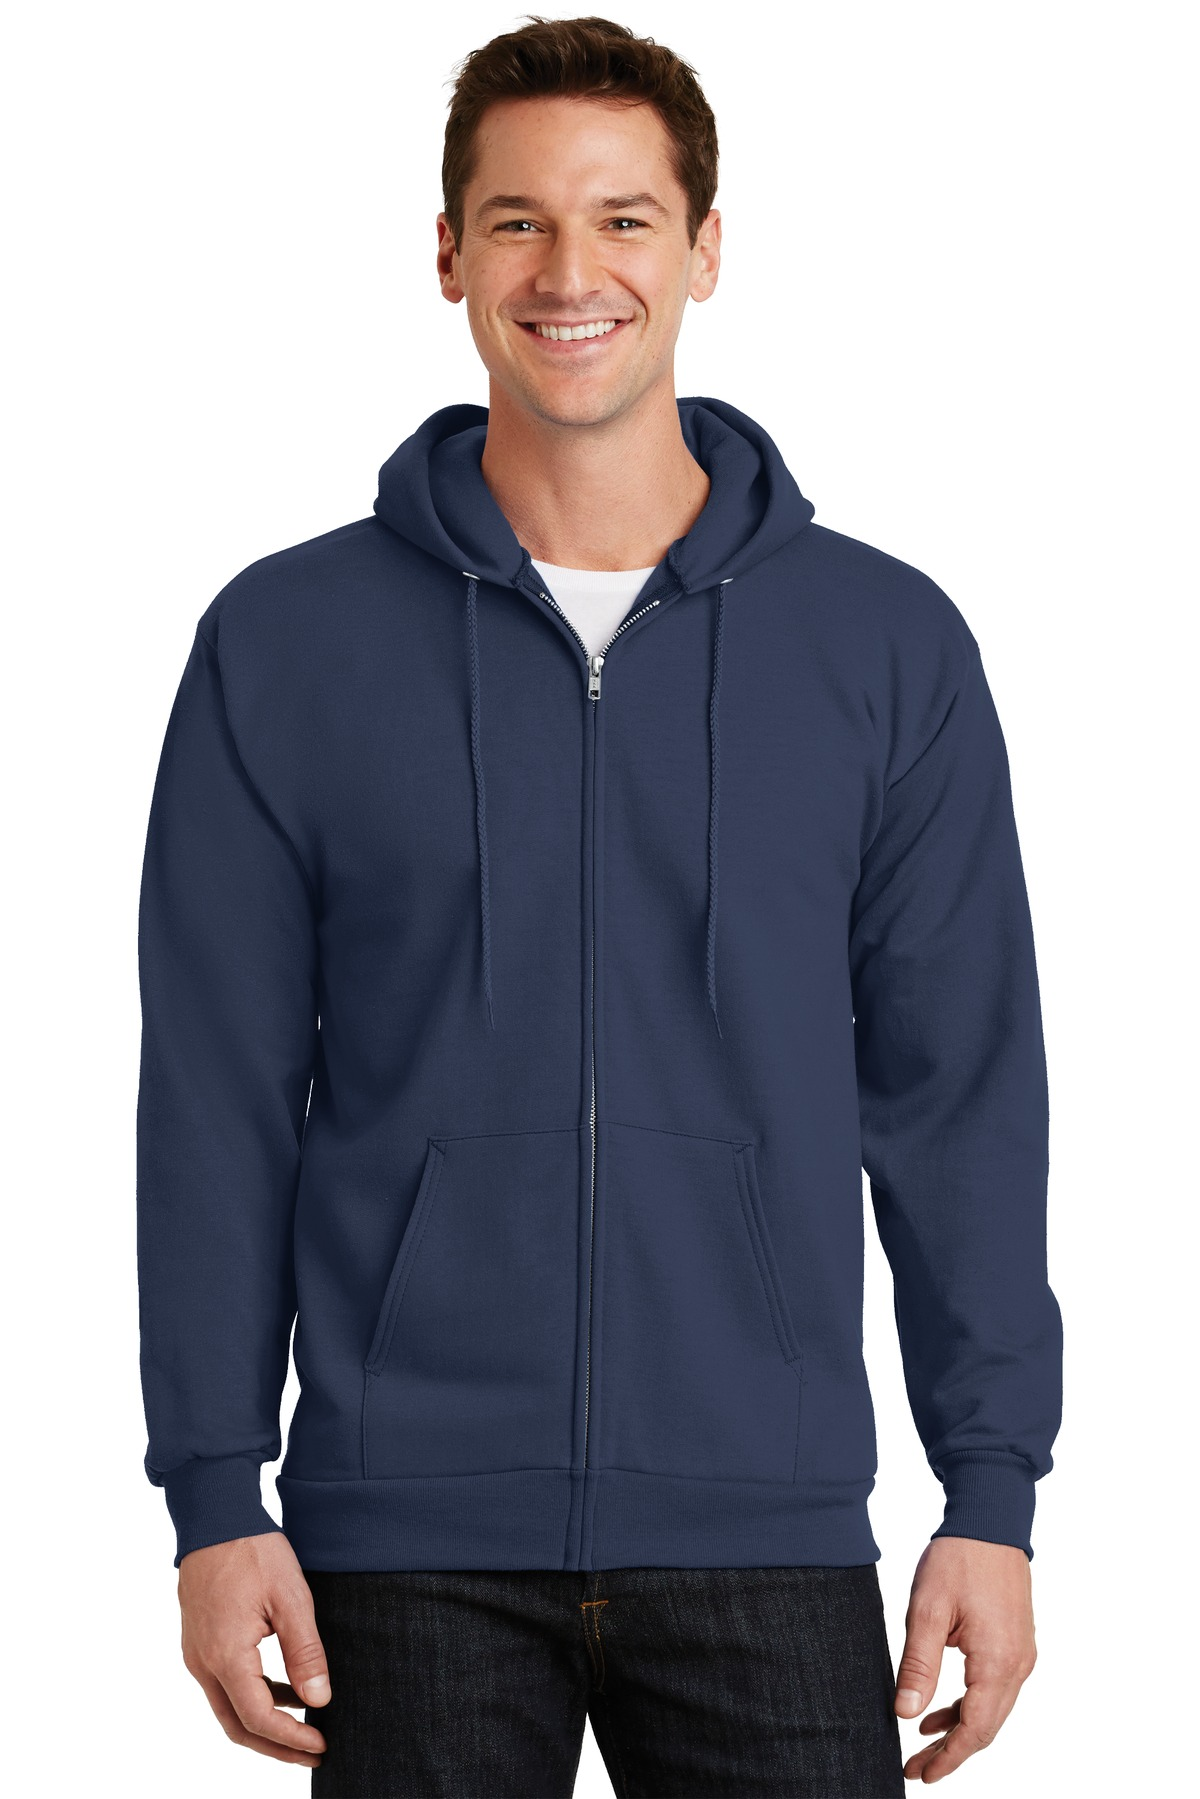 Full-Zip Hooded Sweatshirt Embroidered with Granite Nutrition Logo-Port & Company